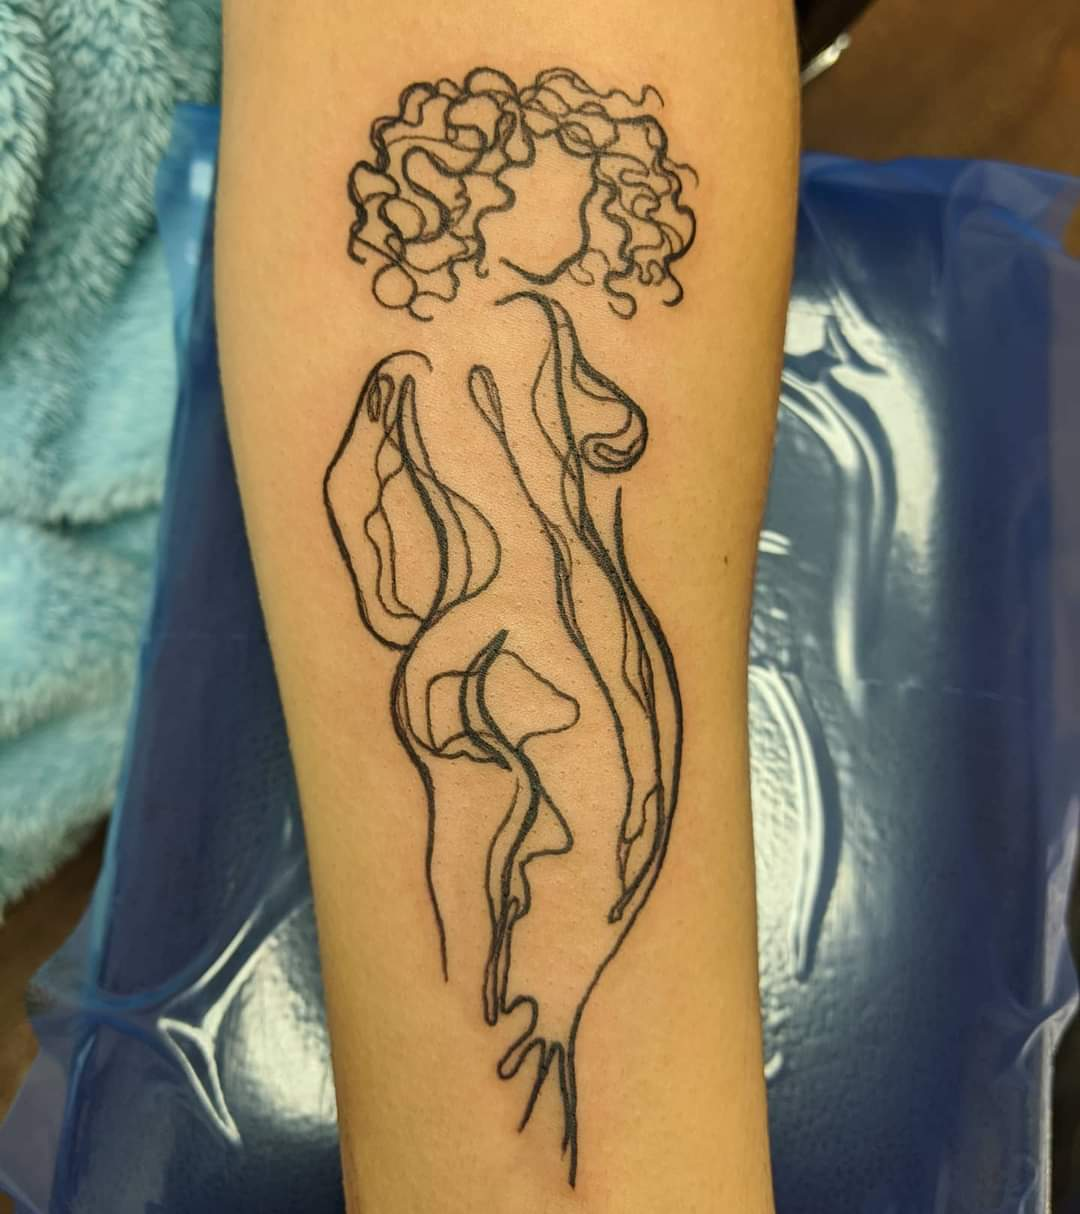 emily-page-tattoo-artist-woman-outline